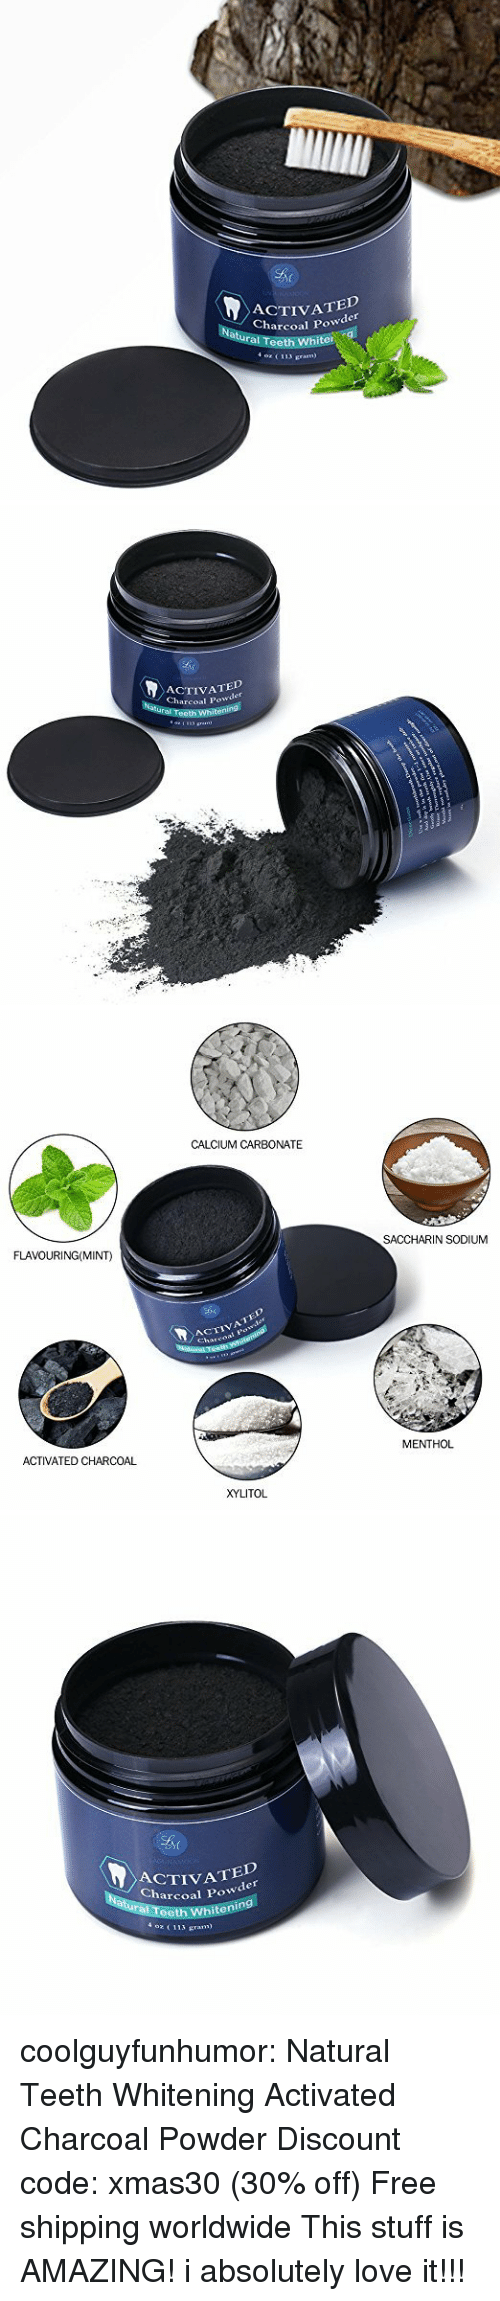 menthol: ACTIVATED  Charcoal Powder  ral Teeth White  4 oz ( 113 gram   ACTIVATED  Charcoal Powder  Natural T   CALCIUM CARBONATE  FLAVOURING(MINT)  SACCHARIN SODIUM  CTIVATED  ACTIVATED CHARCOAL  MENTHOL  XYLITOL   ACTIVA  coal Powder  in  Teeth W  4 oz (113 gran  hiten coolguyfunhumor:  Natural Teeth Whitening Activated Charcoal Powder Discount code: xmas30 (30% off) Free shipping worldwide    This stuff is AMAZING! i absolutely love it!!!